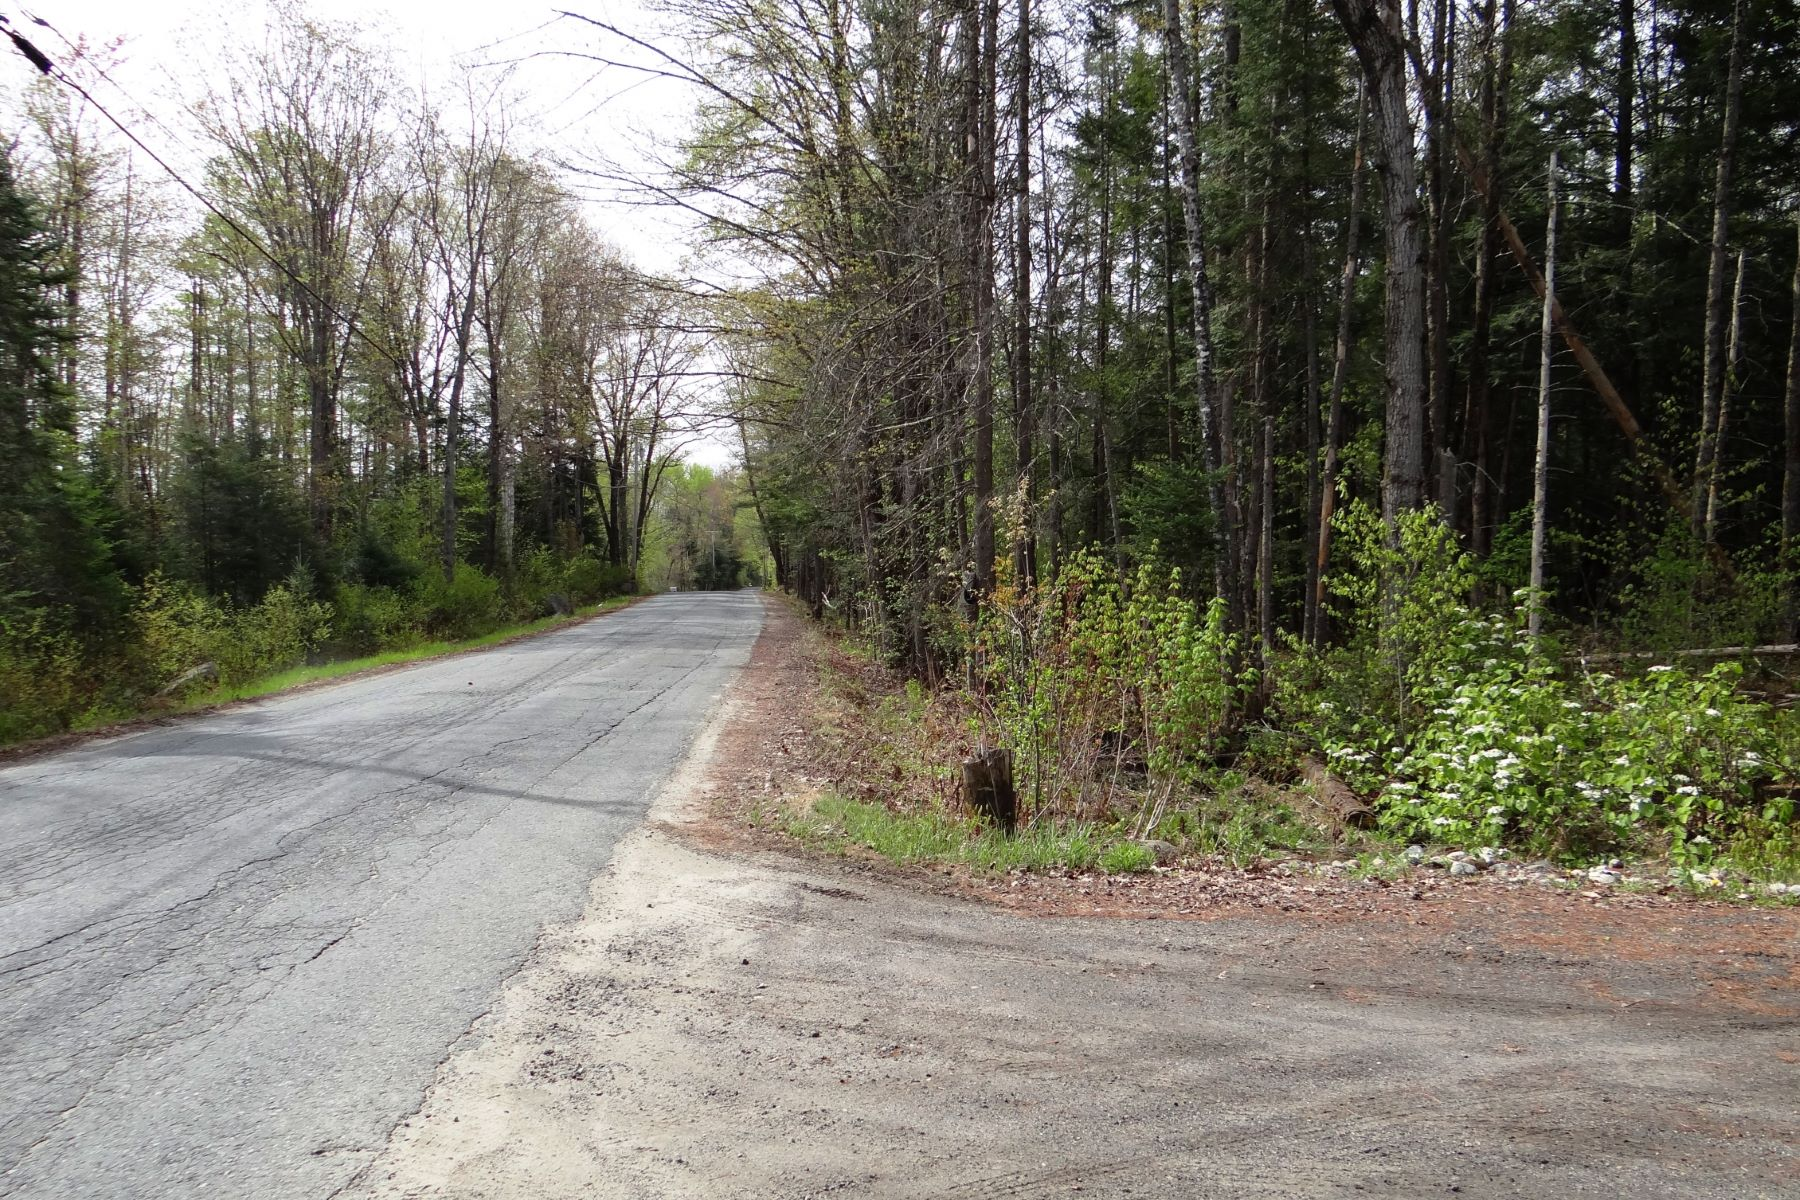 Land for Sale at Grafton Turnpike Road, Canaan Grafton Turnpike Rd Canaan, New Hampshire 03741 United States